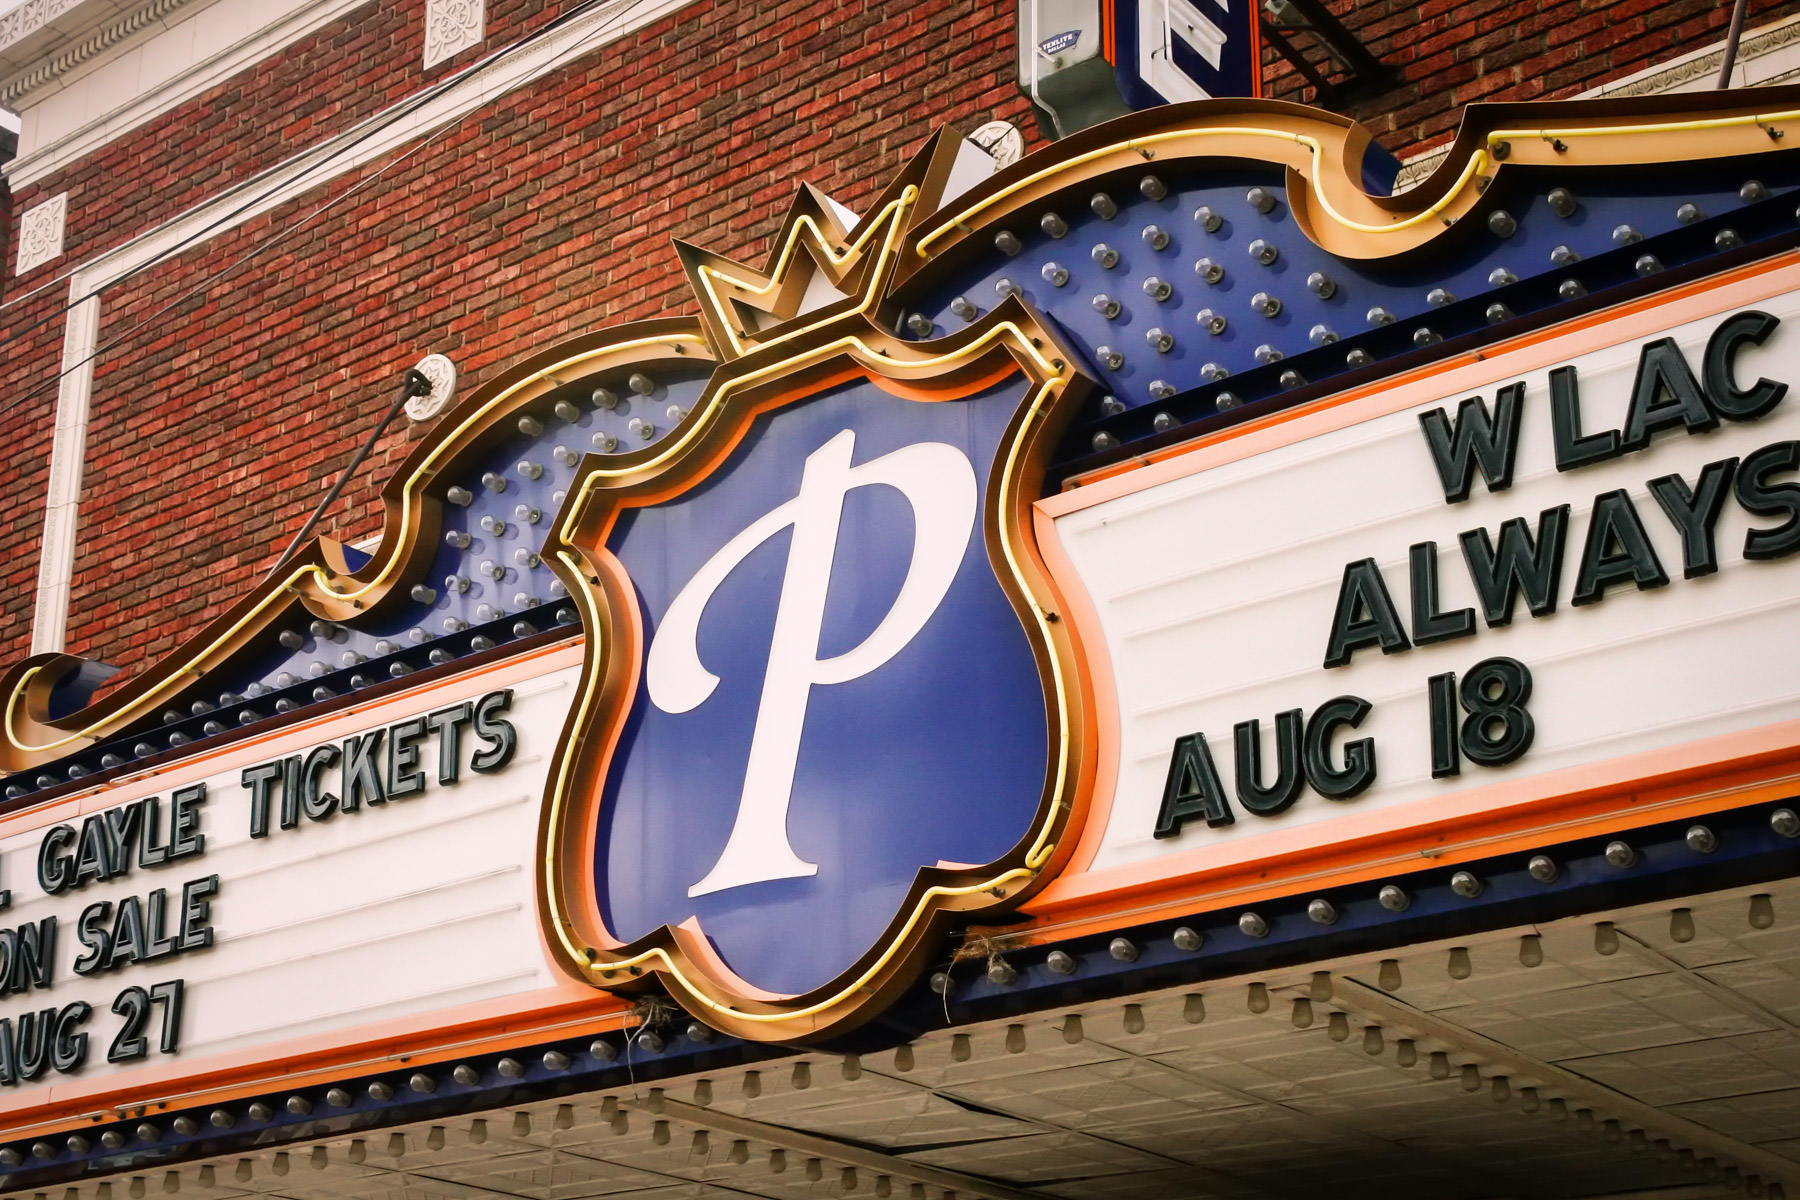 A theatre's marquee in Downtown Waxahachie, Texas.